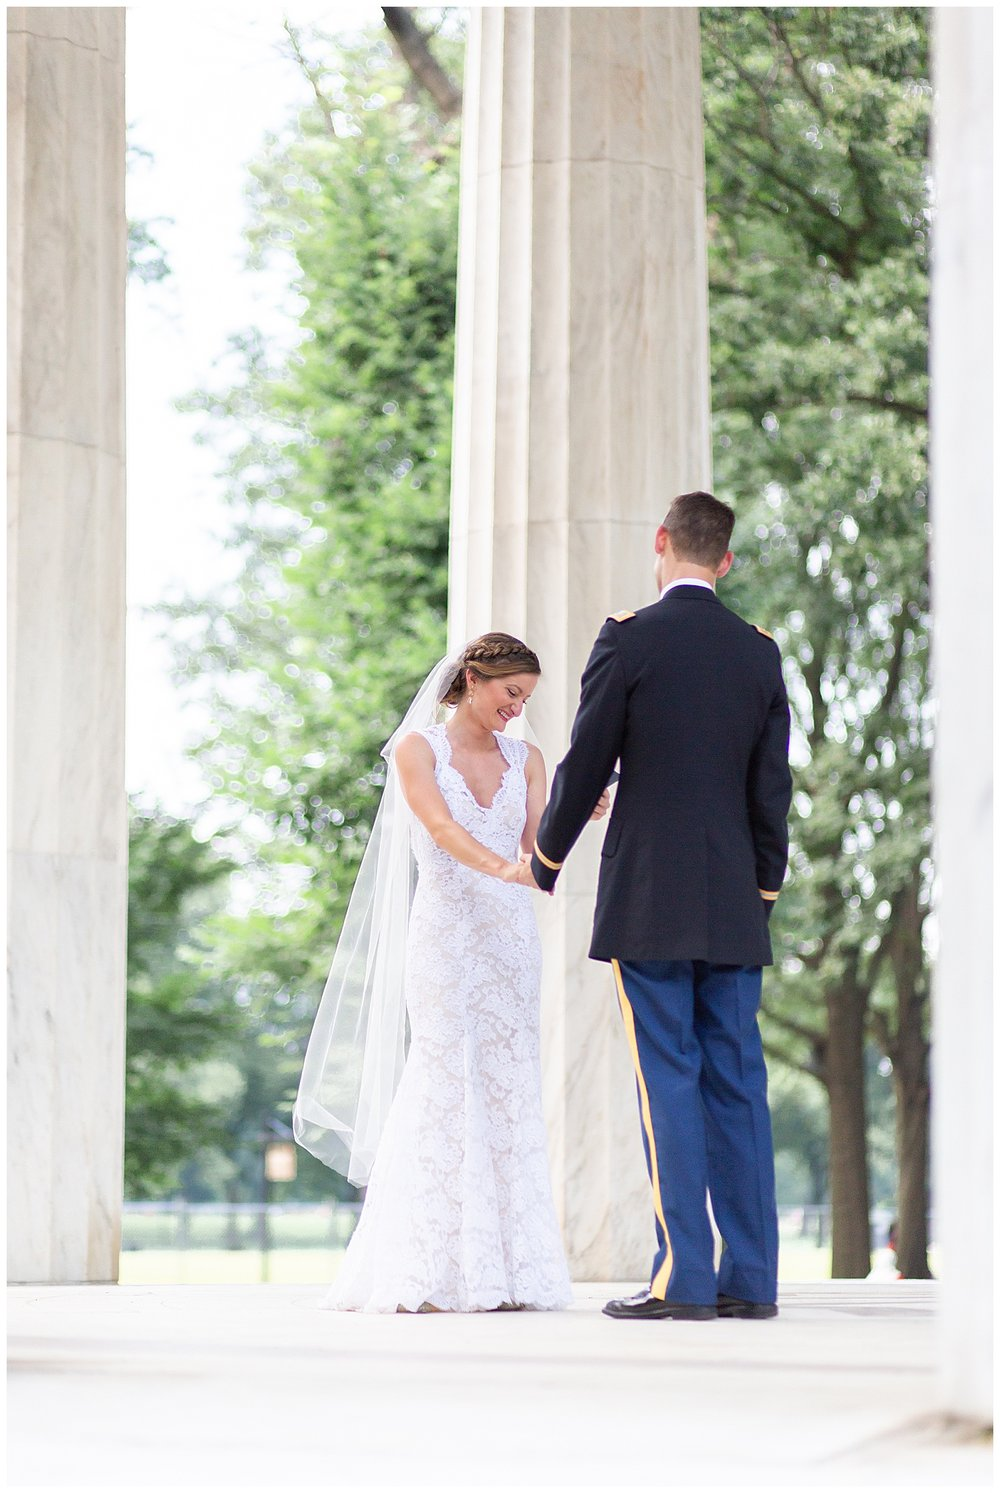 emily-belson-photography-dc-war-memorial-elopement-08.jpg